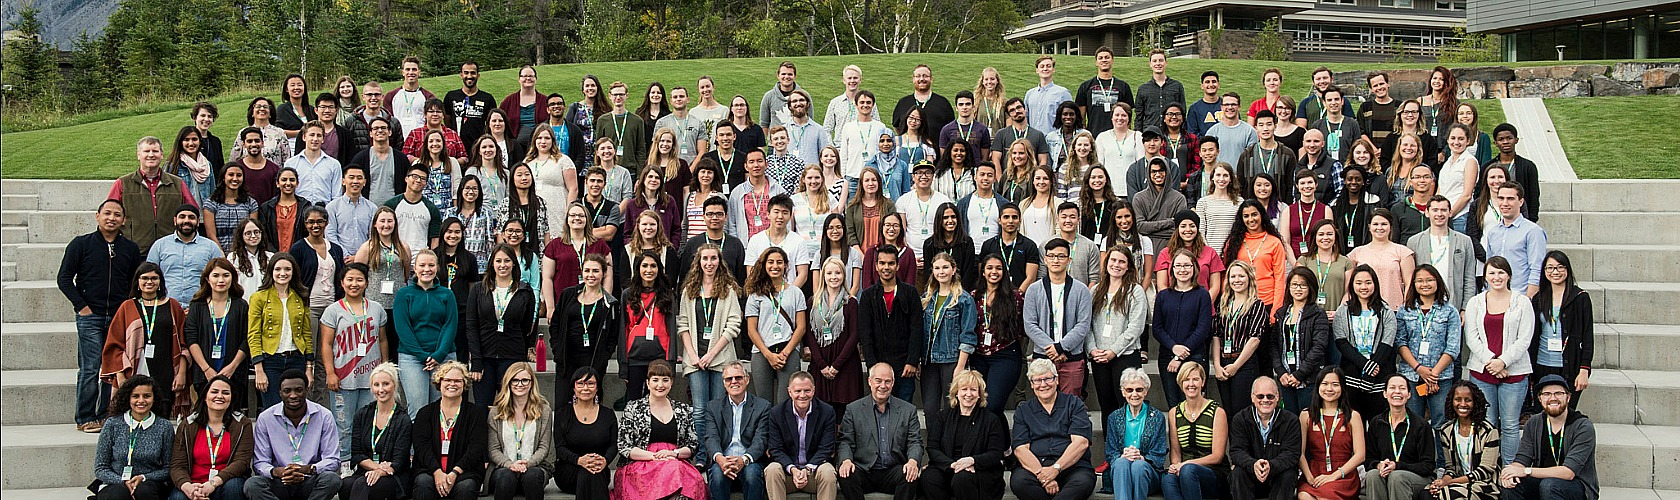 Class photo of 2016 students